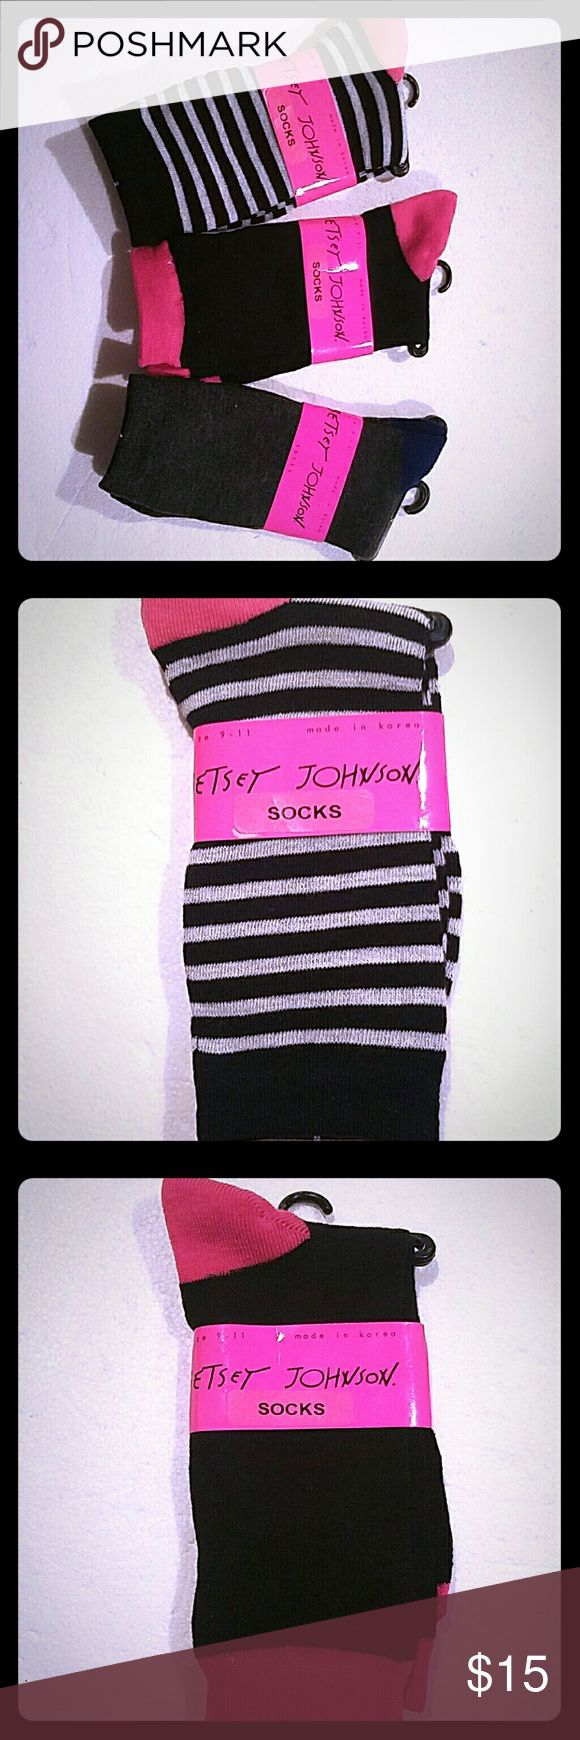 3 Pair of Betsey Johnson Trouser Socks You are purchasing 3 Pairs of fashion icon designer Betsey Johnson Trouser Socks.  Ladies Size 9-11. One pair is black with hot pink trim, one pair is black and white striped with pink trim and one pair is dark gray with a dark blue heel. They retail for $10 a pair. Get them here! Betsey Johnson Accessories Hosiery & Socks